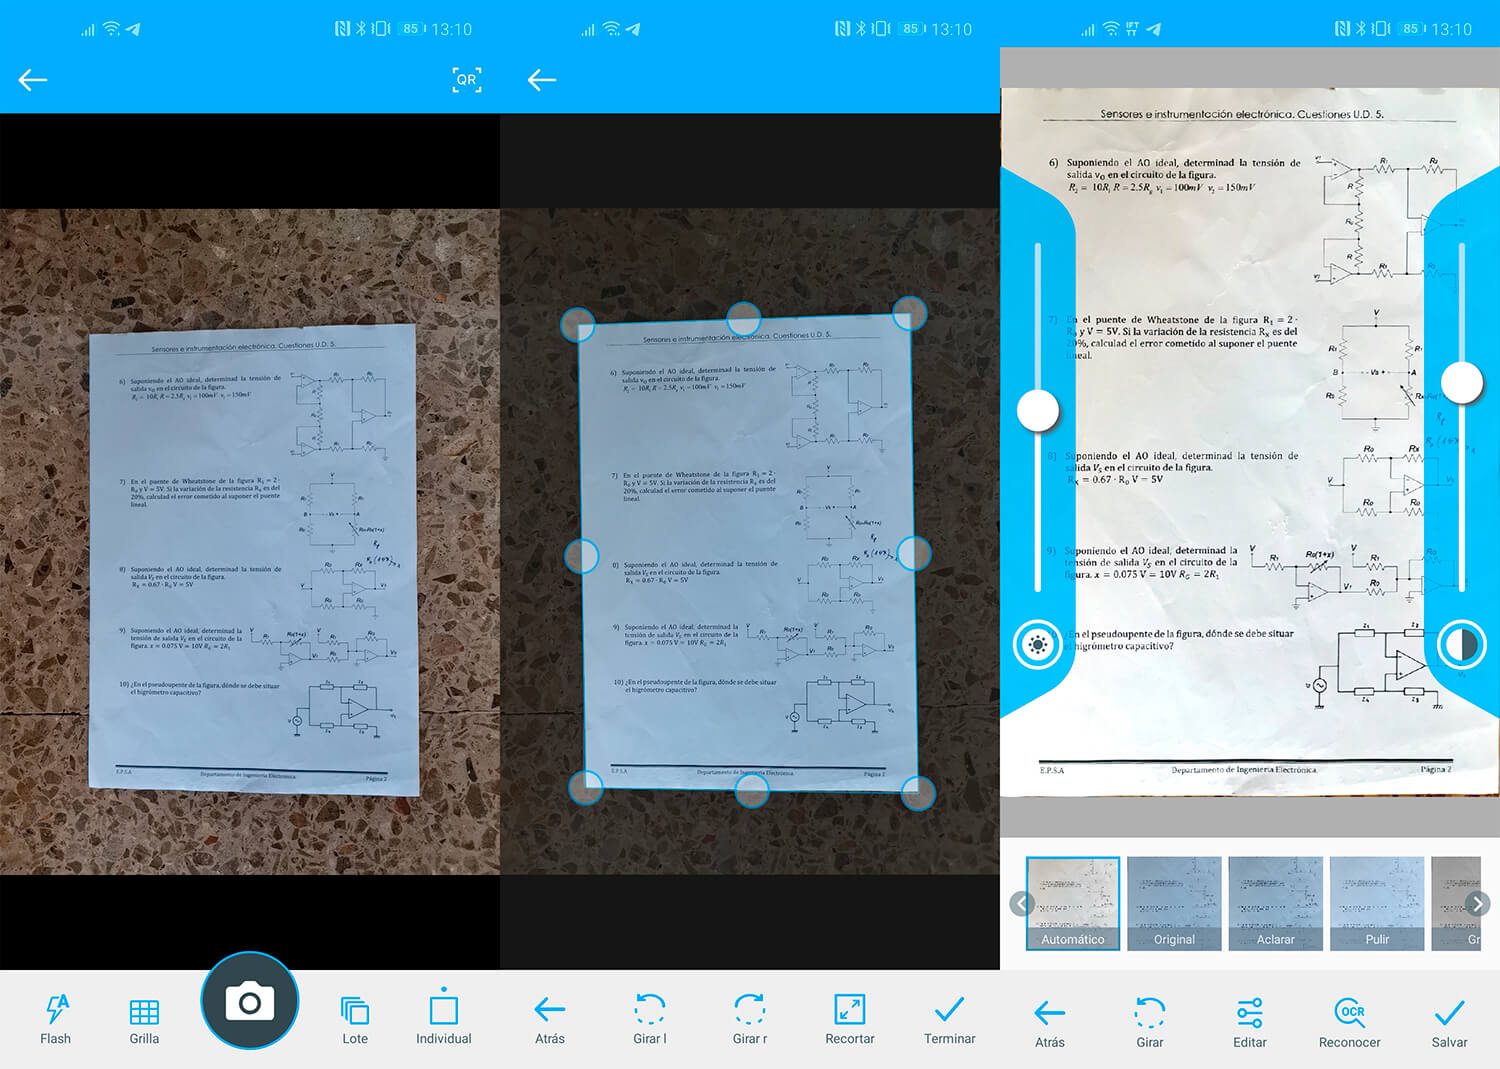 """Tap Scanner """"width ="""" 1500 """"height ="""" 1069 """"srcset ="""" https://tech-blogs.com/wp-content/uploads/2019/08/1567173976_96_How-to-scan-documents-with-your-phone-without-CamScanner.jpg 1500w, https: //www.proandroid .com / wp-content / uploads / 2019/08 / tap-scanner-300x214.jpg 300w, https://www.proandroid.com/wp-content/uploads/2019/08/tap-scanner-768x547.jpg 768w , https://www.proandroid.com/wp-content/uploads/2019/08/tap-scanner-1024x730.jpg 1024w, https://www.proandroid.com/wp-content/uploads/2019/08/ tap-scanner-624x445.jpg 624w """"sizes ="""" (max-width: 1500px) 100vw, 1500px"""